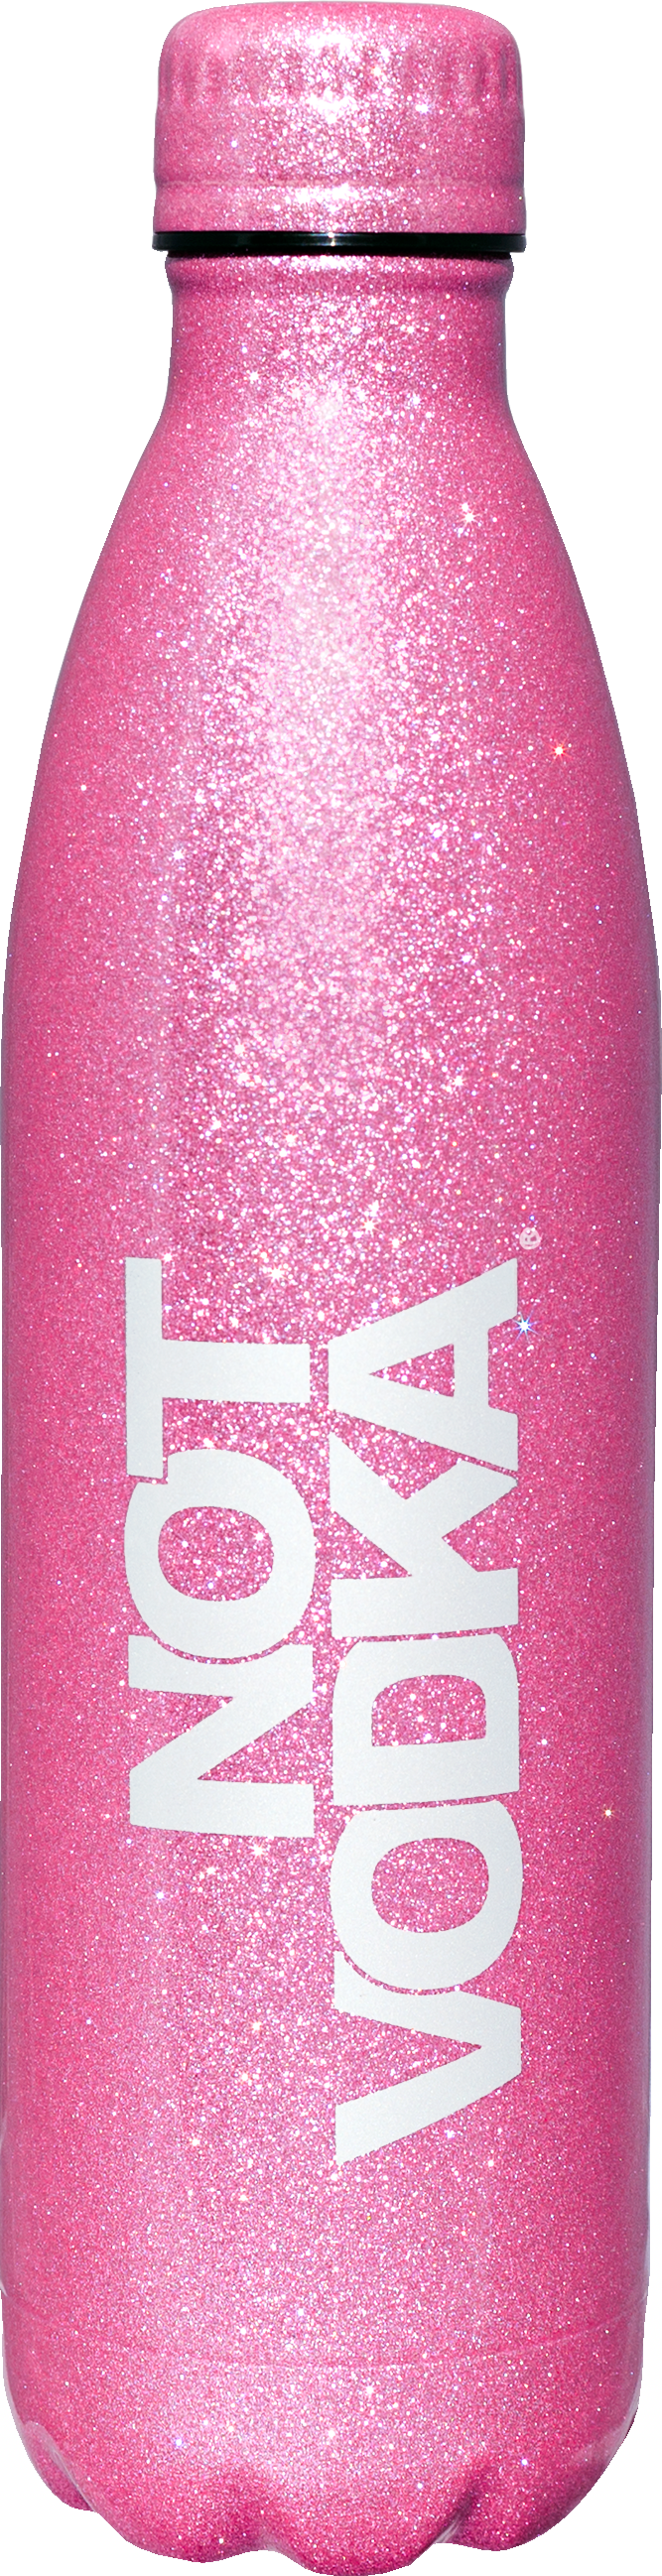 Glitter Series Insulated Water Bottle  Rose, PACKAGE 1Ct